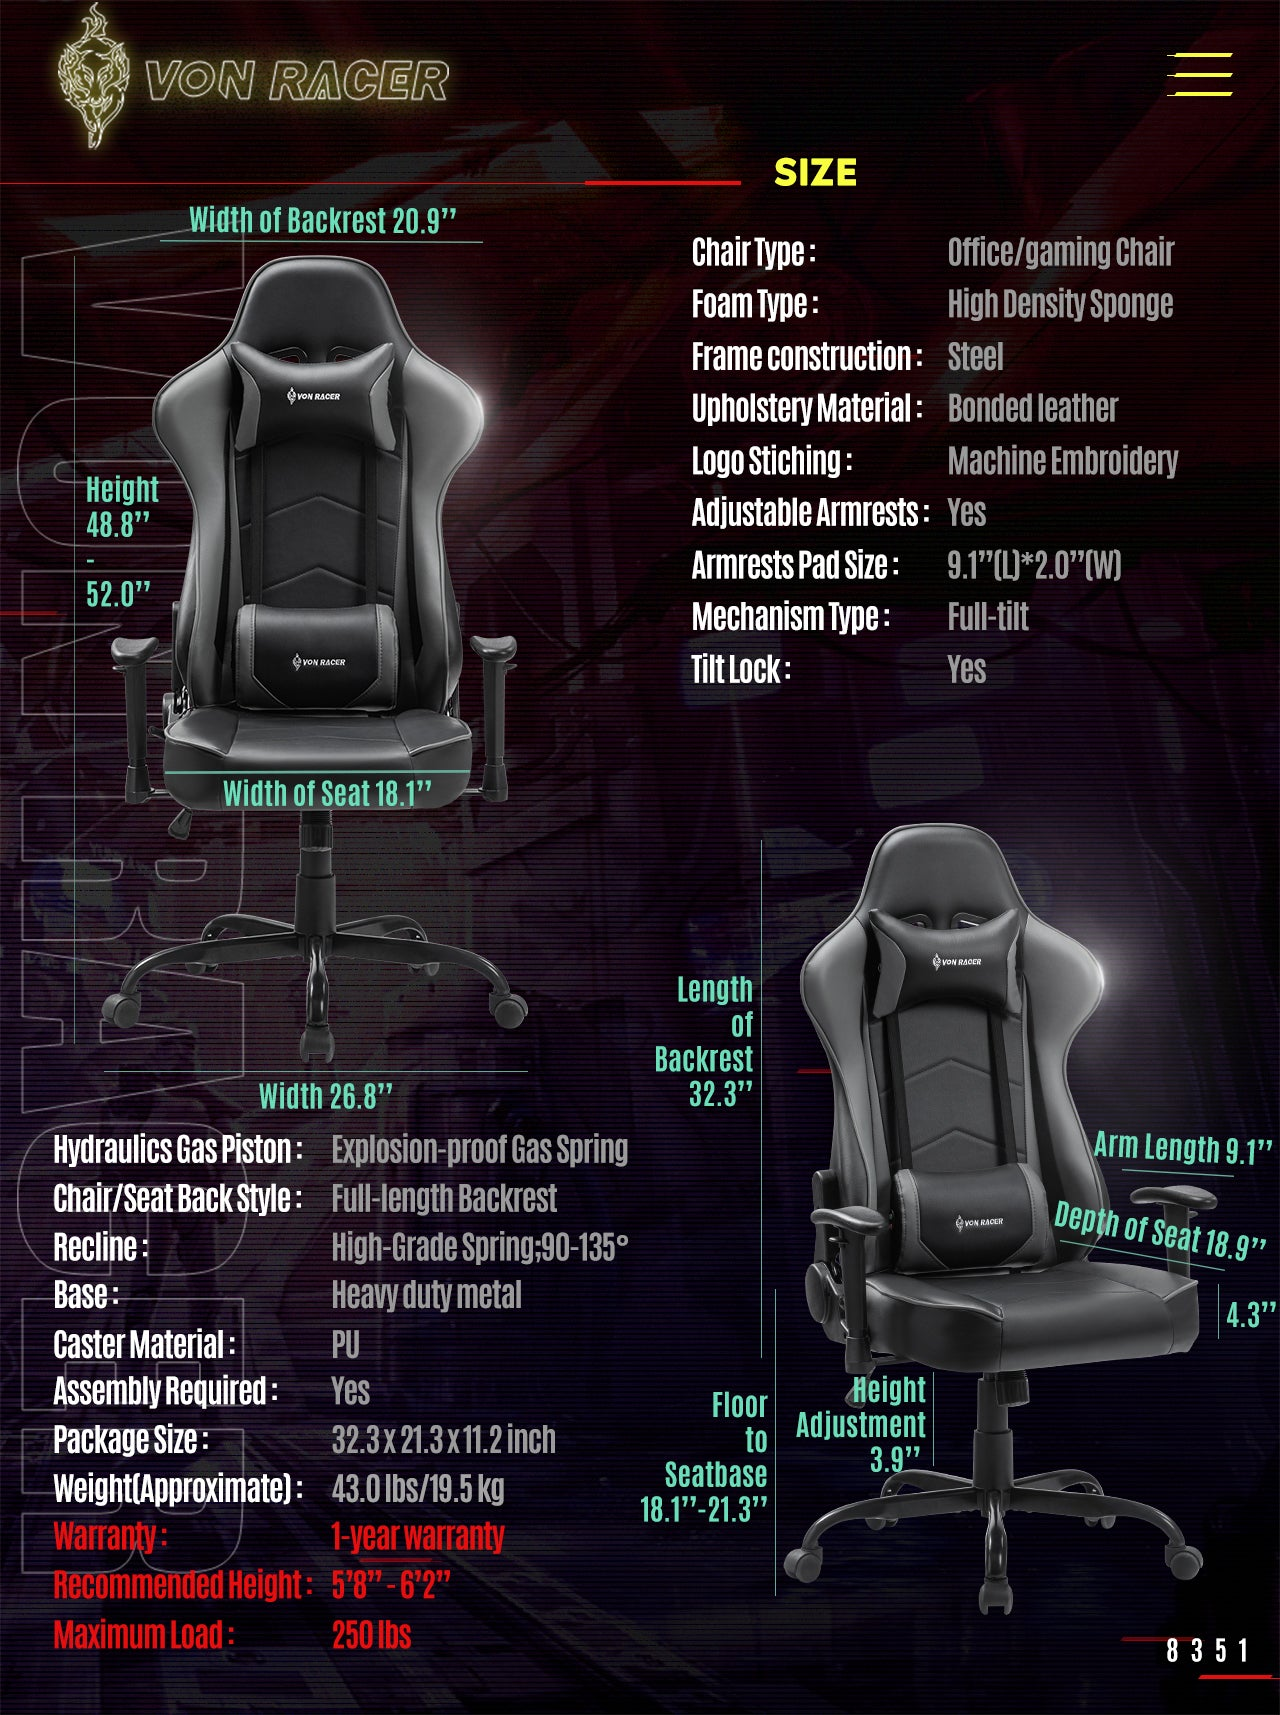 VON RACER Gaming Chair ADDAX Series Ergonomic gray gaming desk chair specification